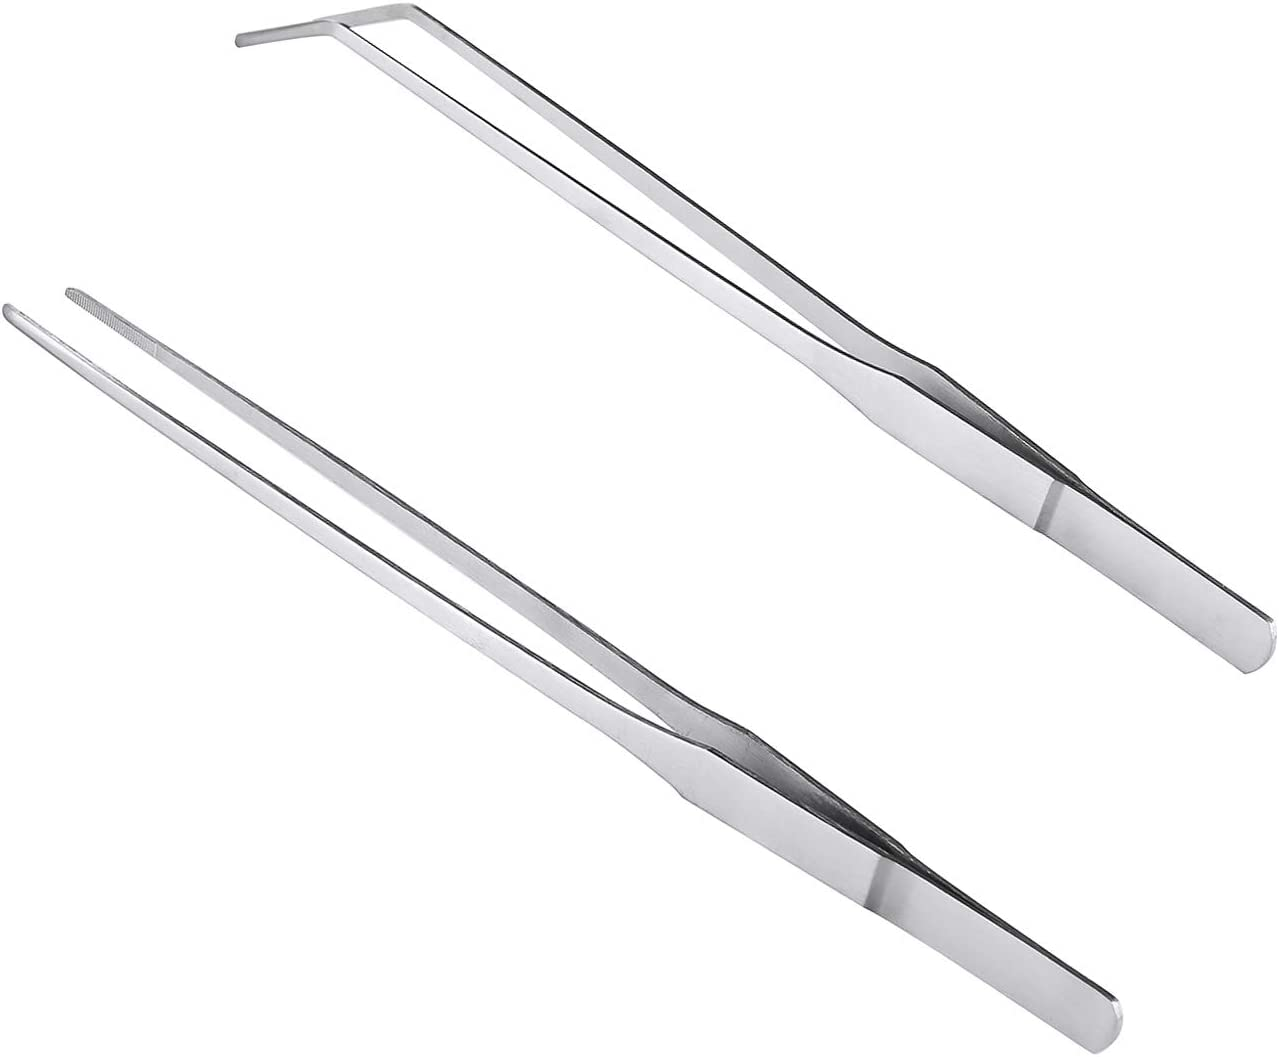 BoomYou 7.1 inches Stainless Steel Tweezers All-purpose Forceps Professional Tweezers Tongs and Comfortable Ridged Handle Feeding Straight Tweezer for Aquatic Pets or Corals Crafting Cooking Repairing